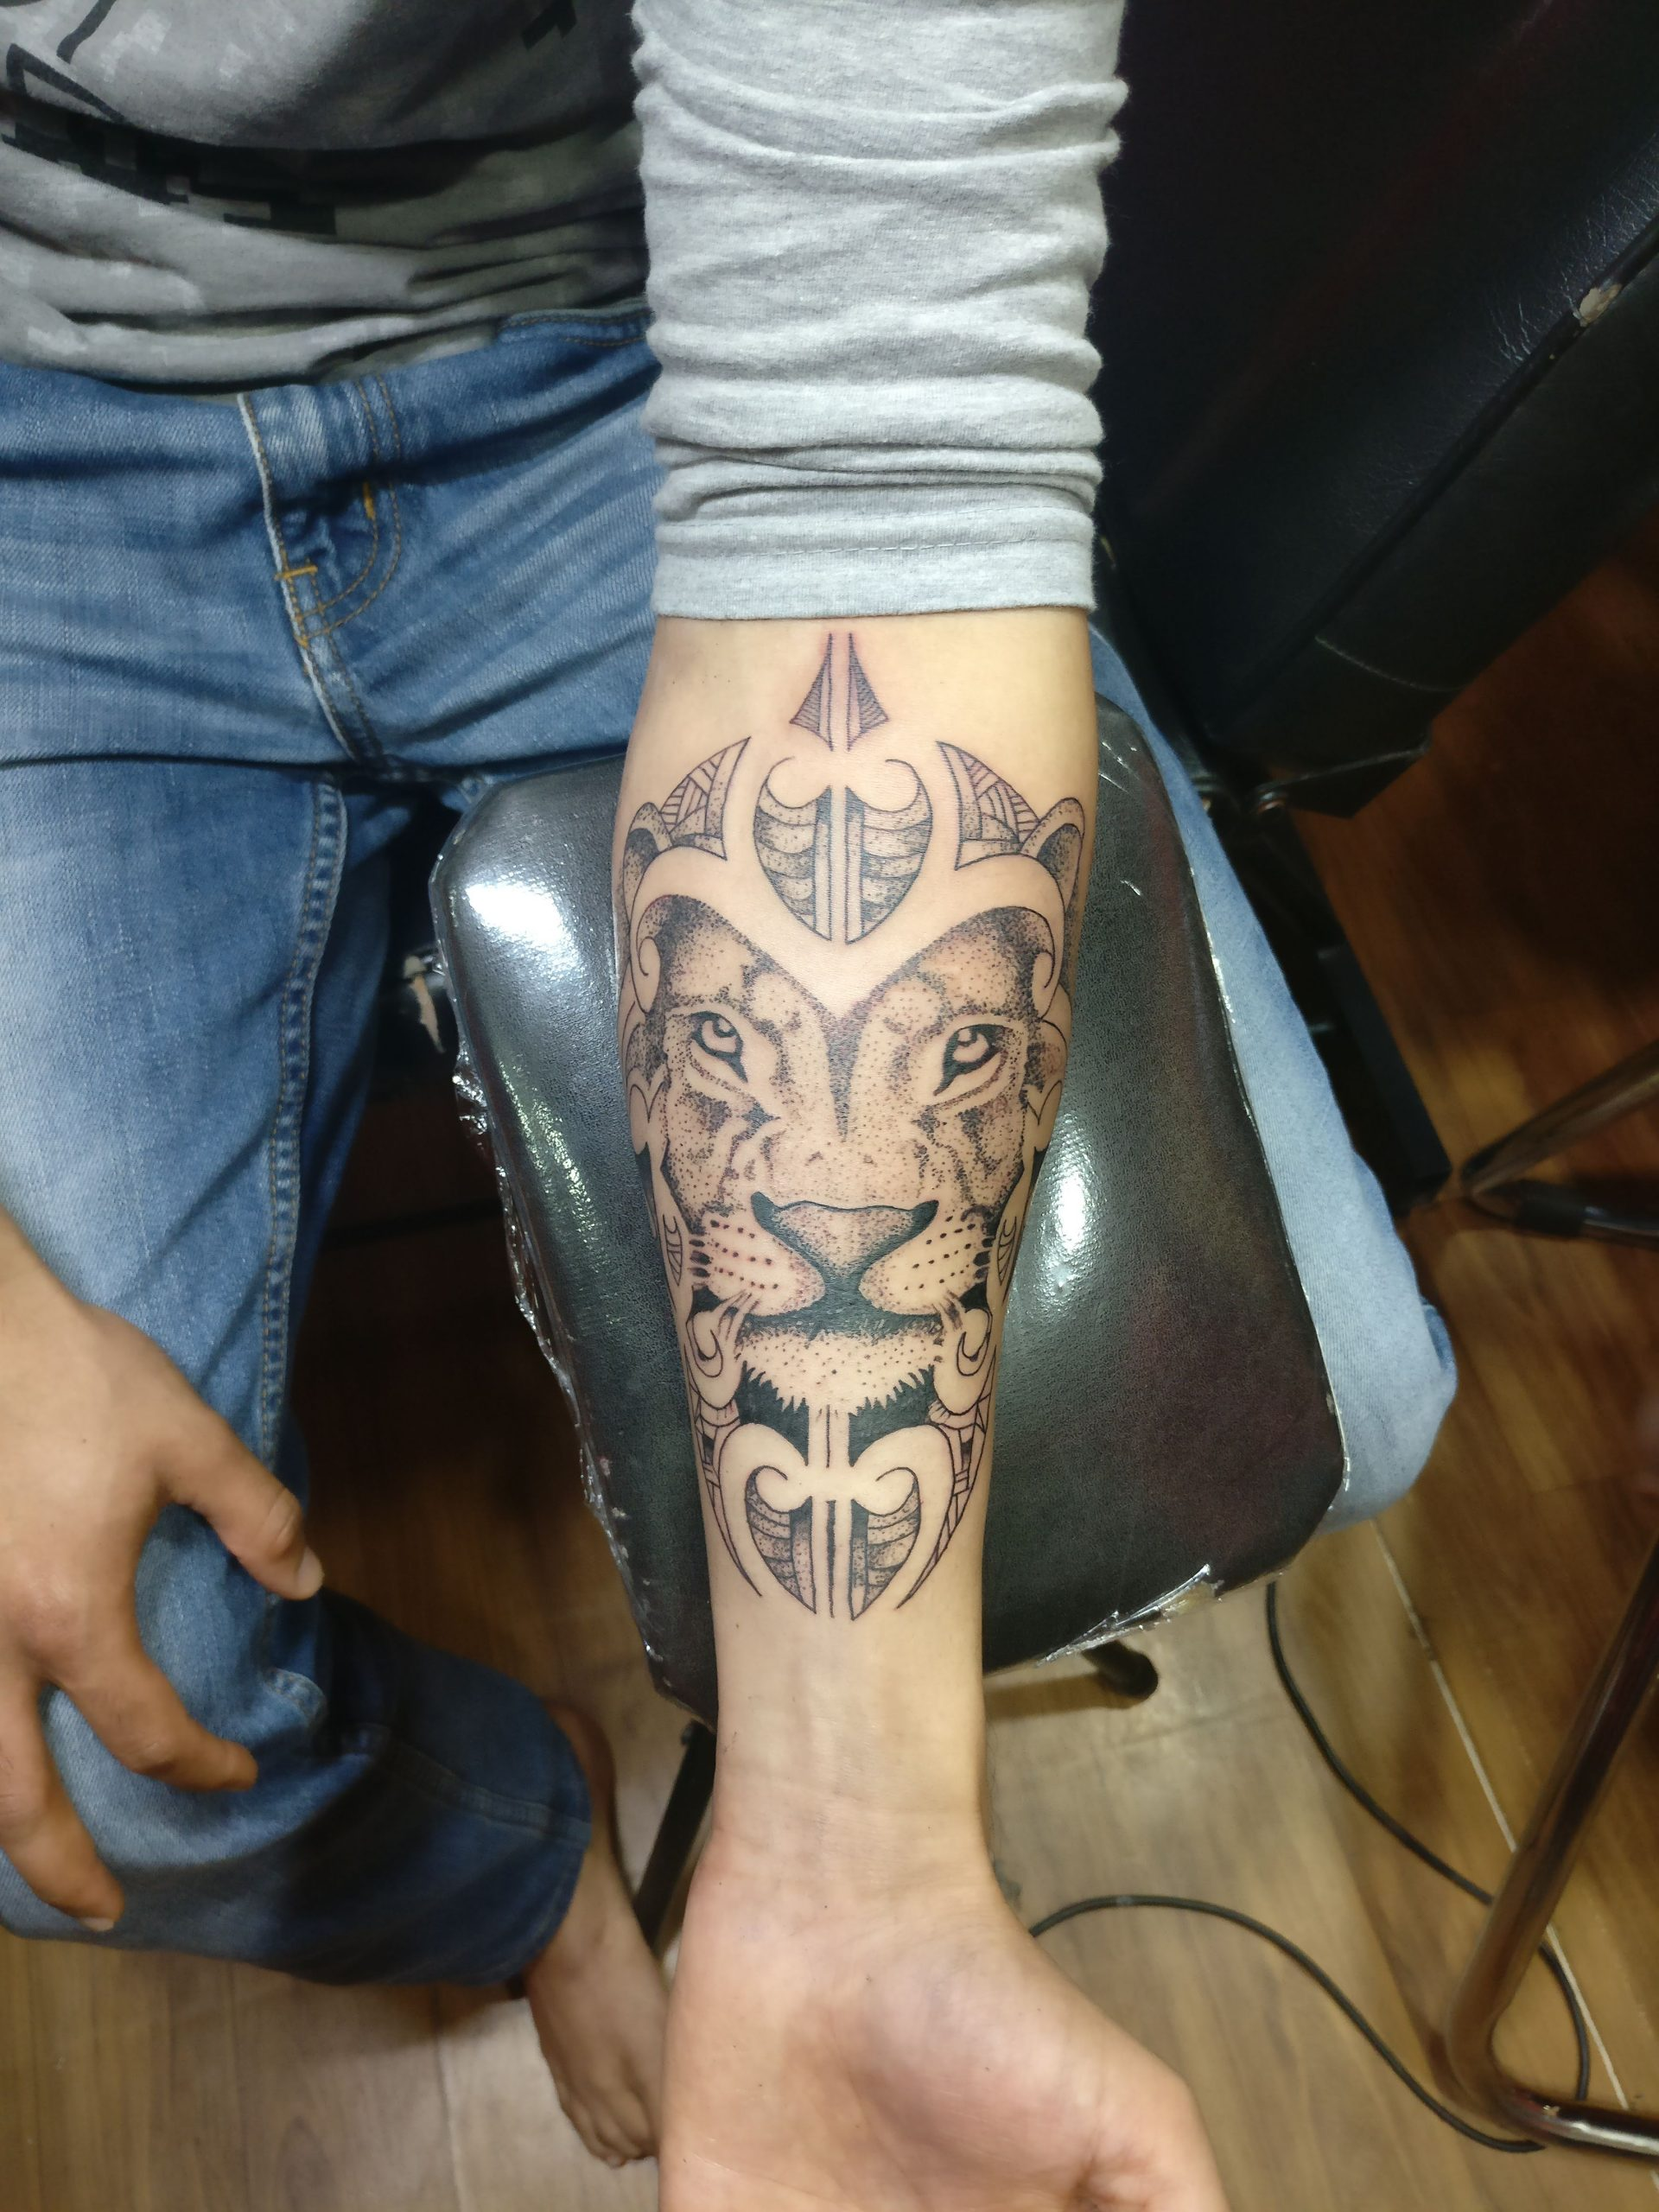 Forearm Tattoo Designs | Tarazwa Tattoo & Body Piercing